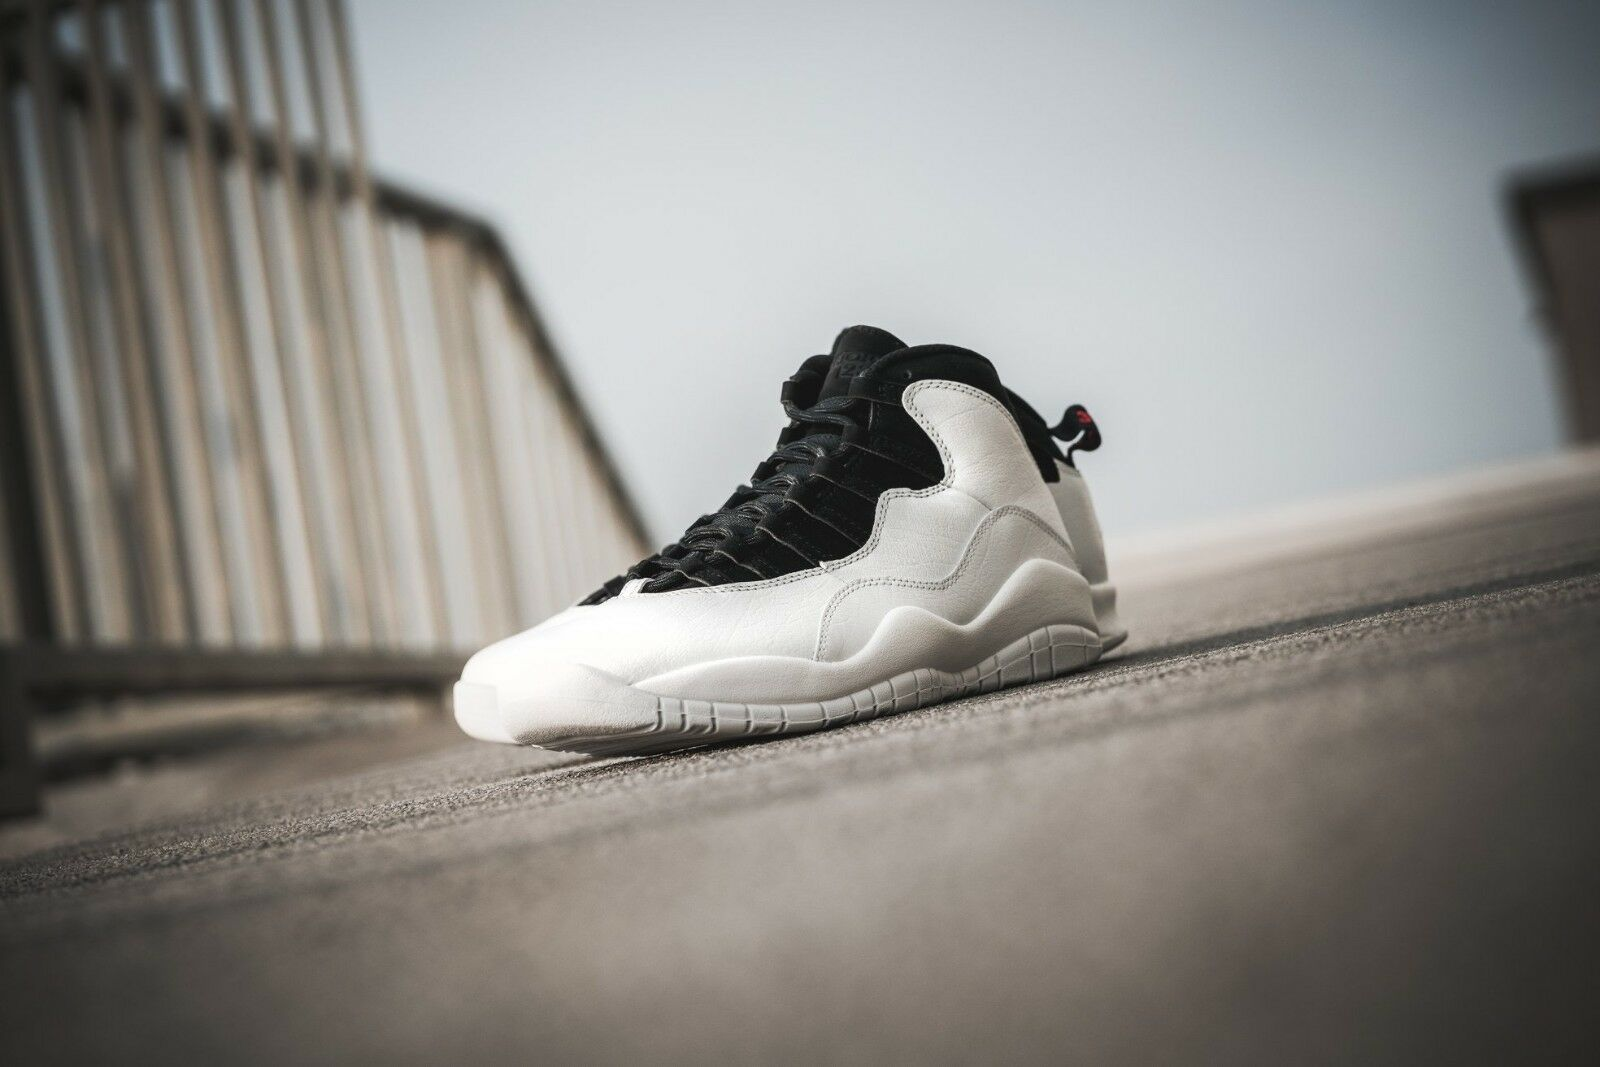 Nike air jordan 10 retrò vertice white-summit white sz [310805-104]